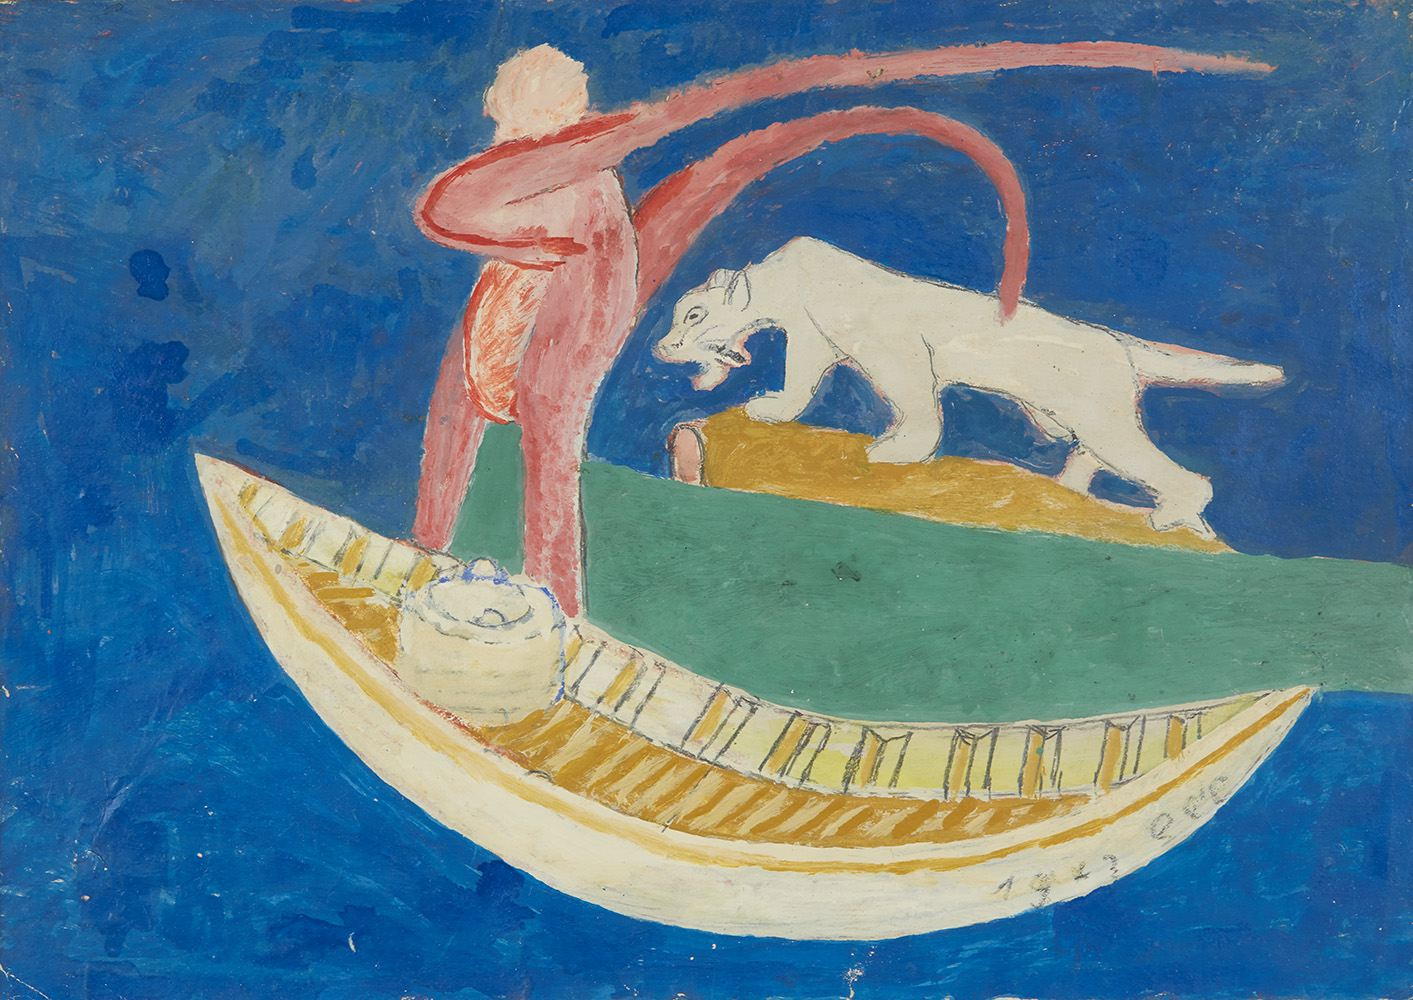 Sava Sekulić  Untitled (Boat with figure and cat)  , 1972 Mixed media on paper 11.75 x 16.5 inches 29.8 x 41.9 cm SvS 3